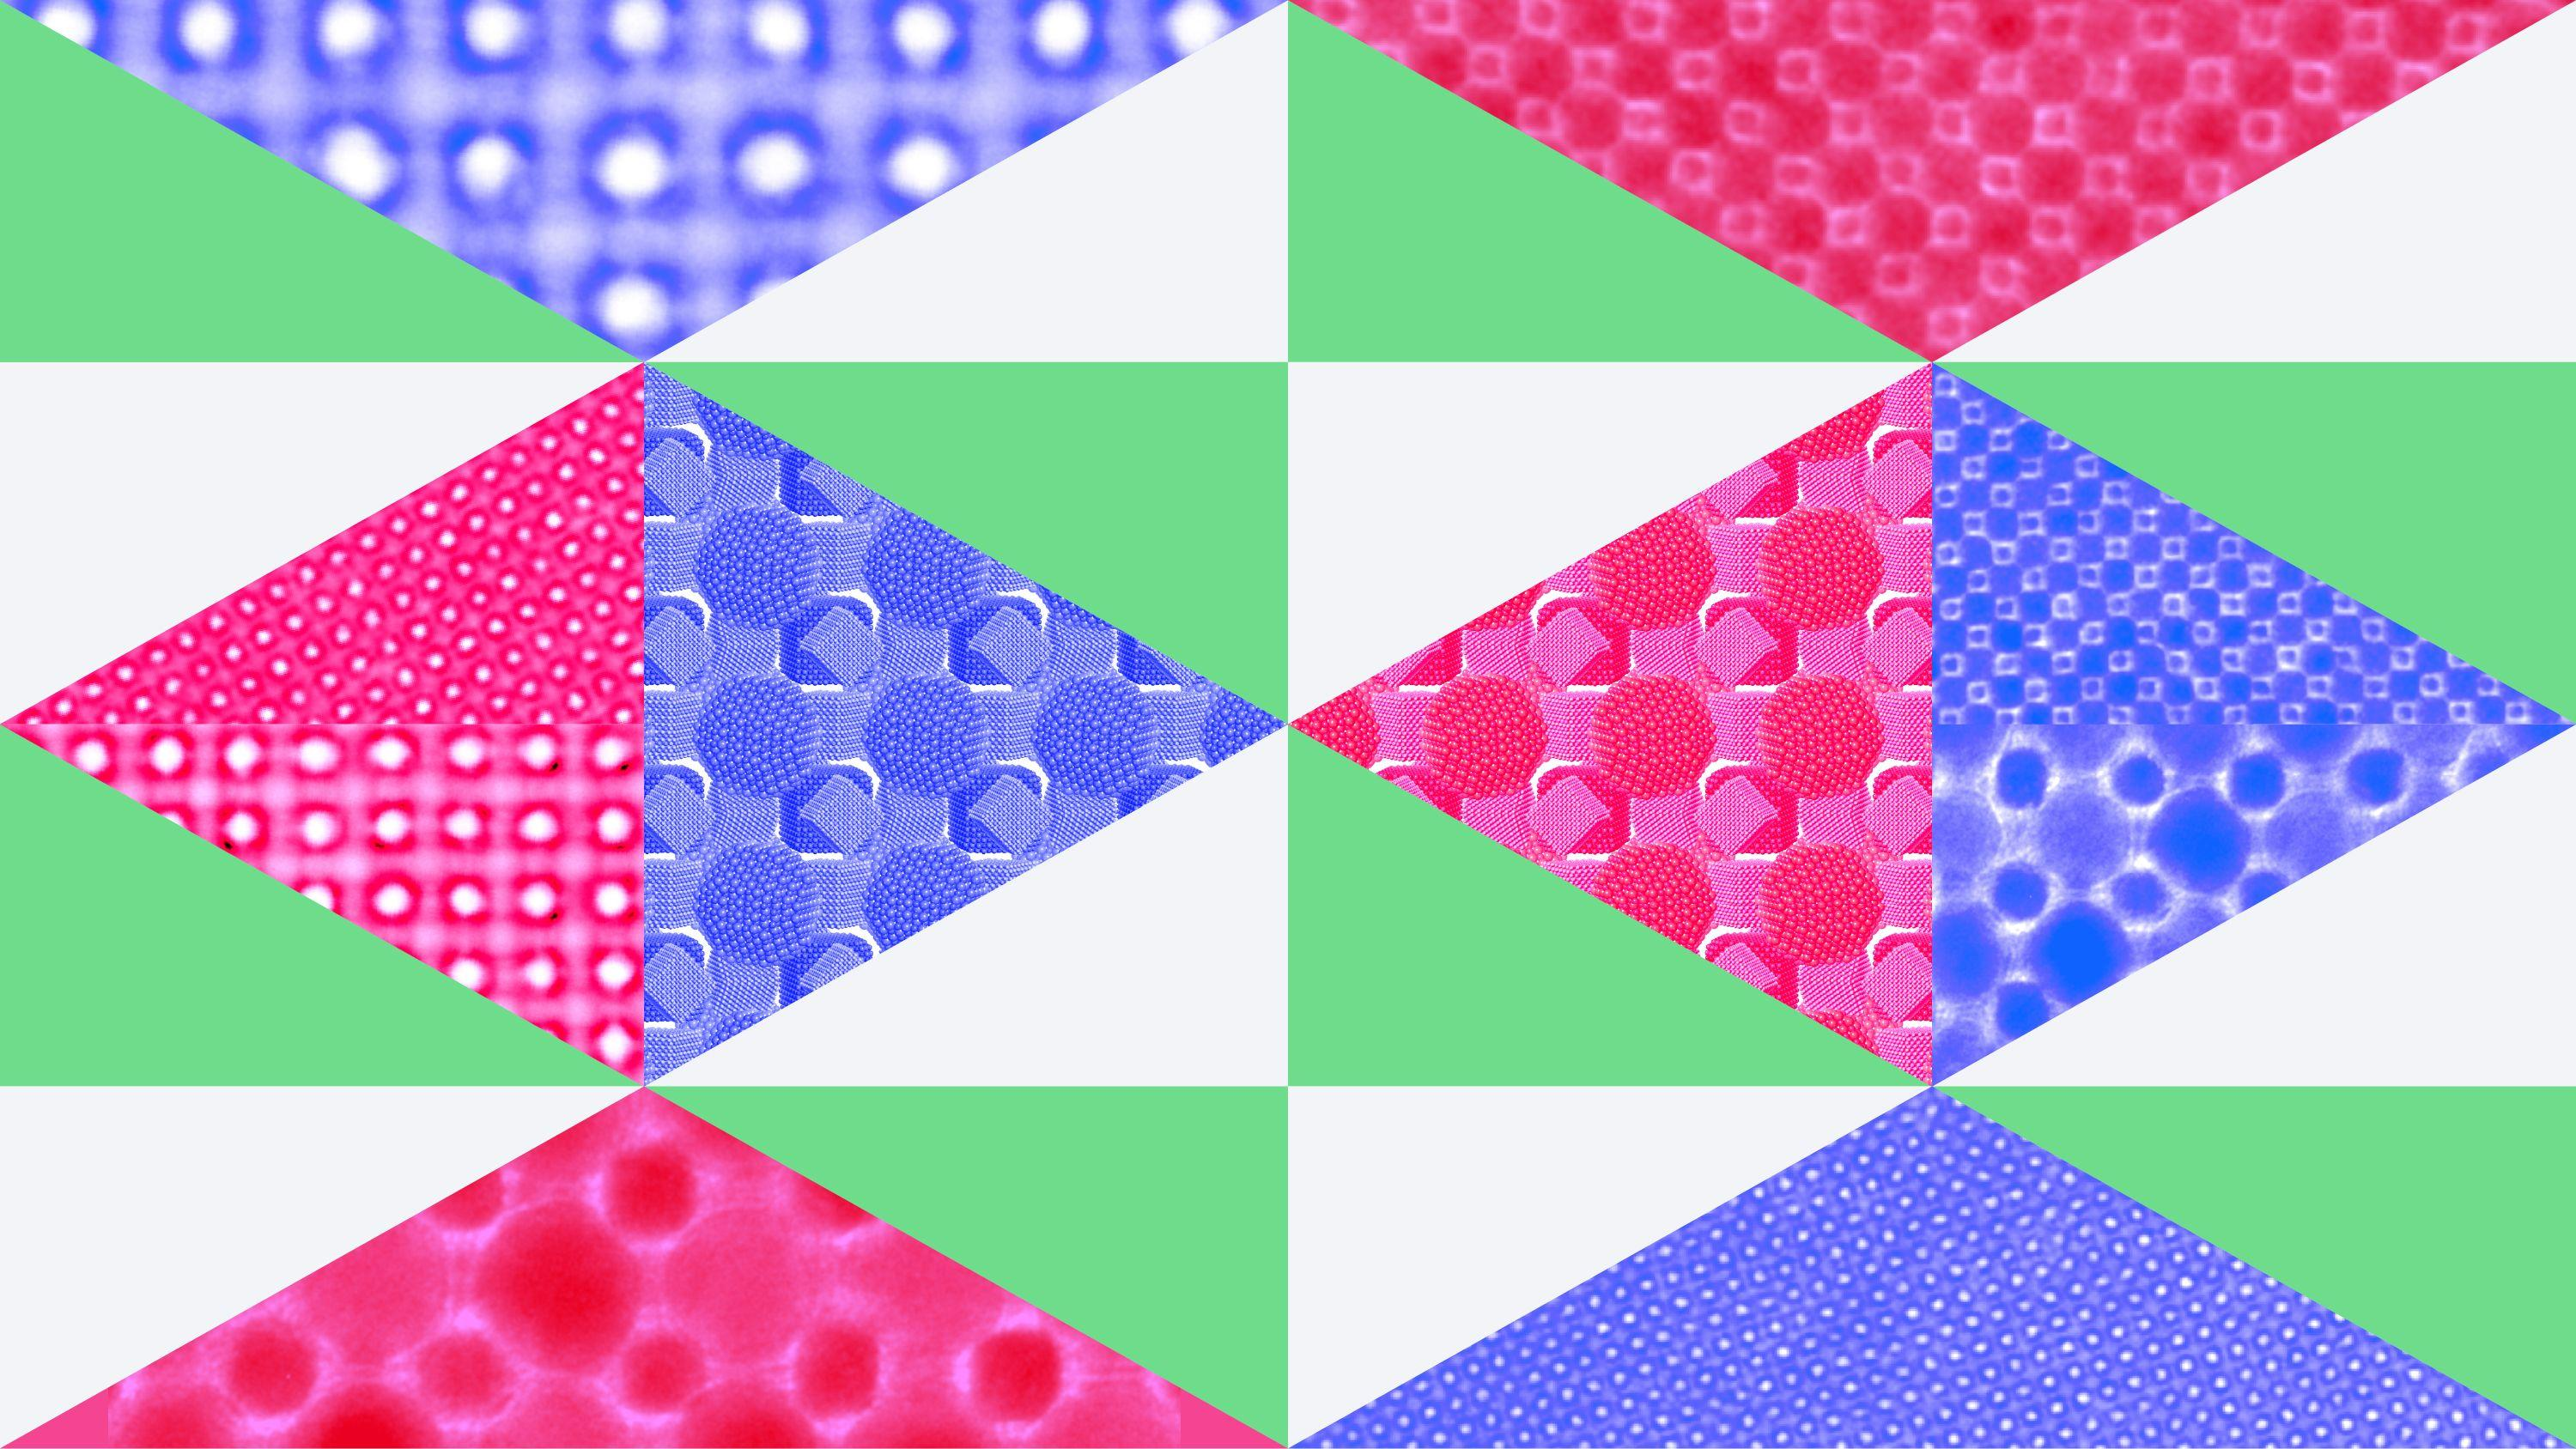 """Nature cover story features assembling nanocrystals into """"supercrystals,"""" which allows engineers to design materials with novel optical properties."""